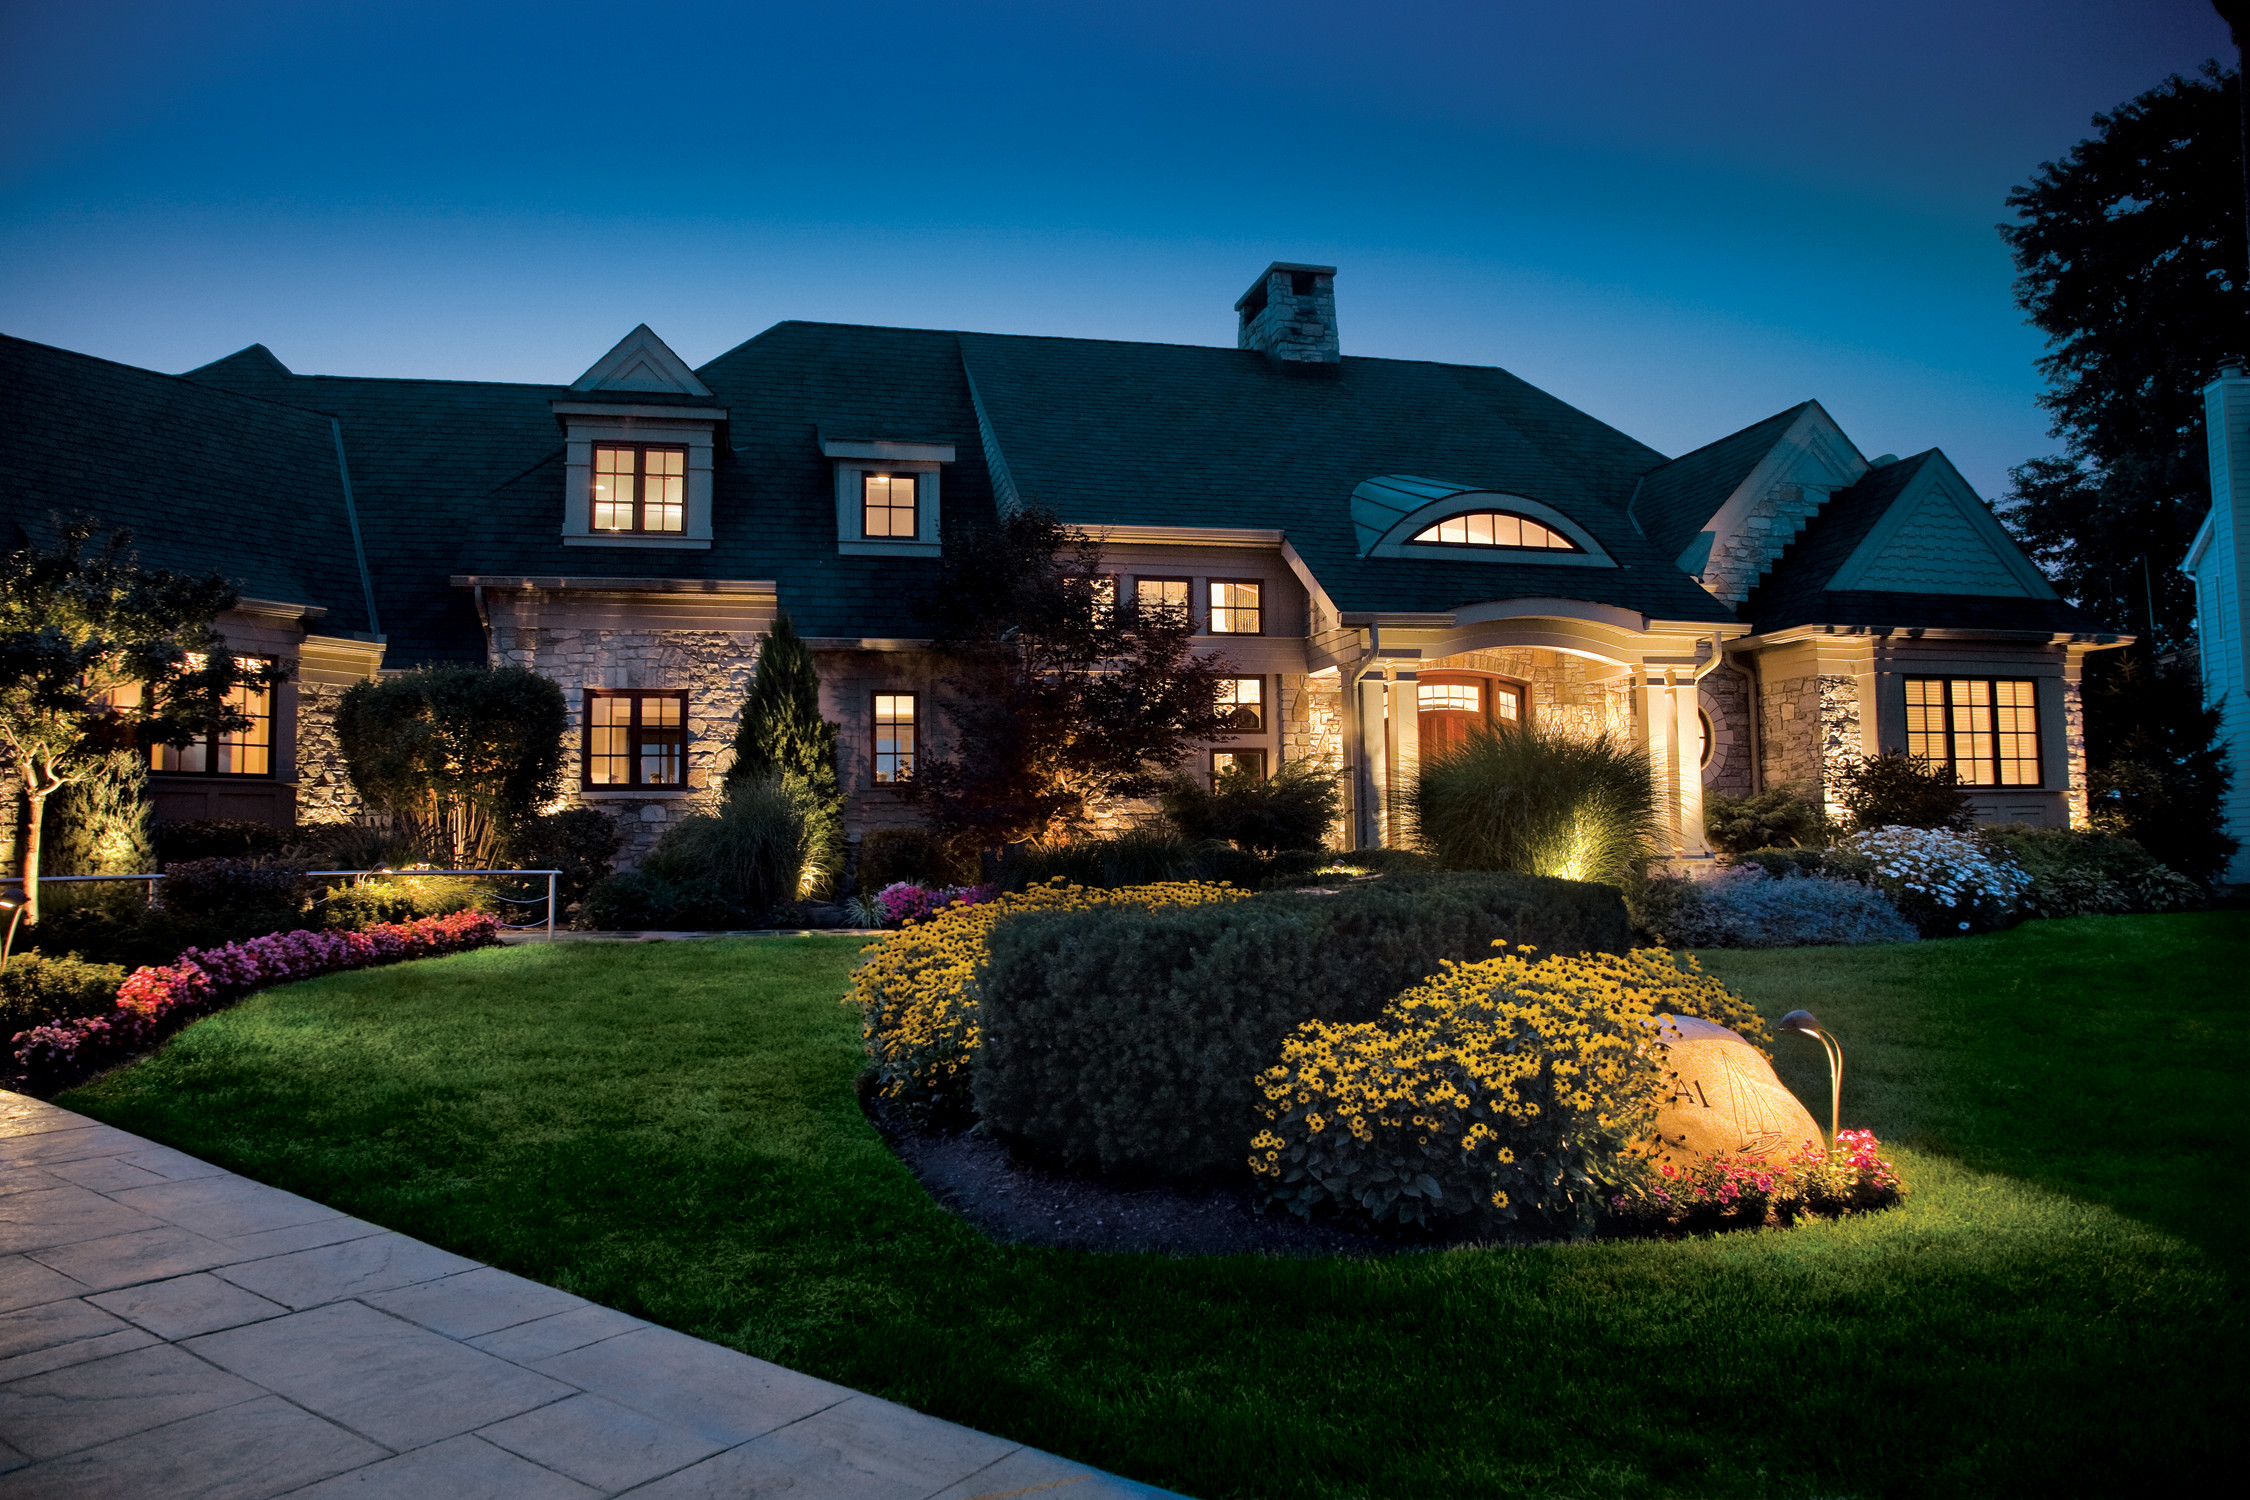 Outdoor Lighting Ideas the Outdoor Lighting Ideas for Update Your House